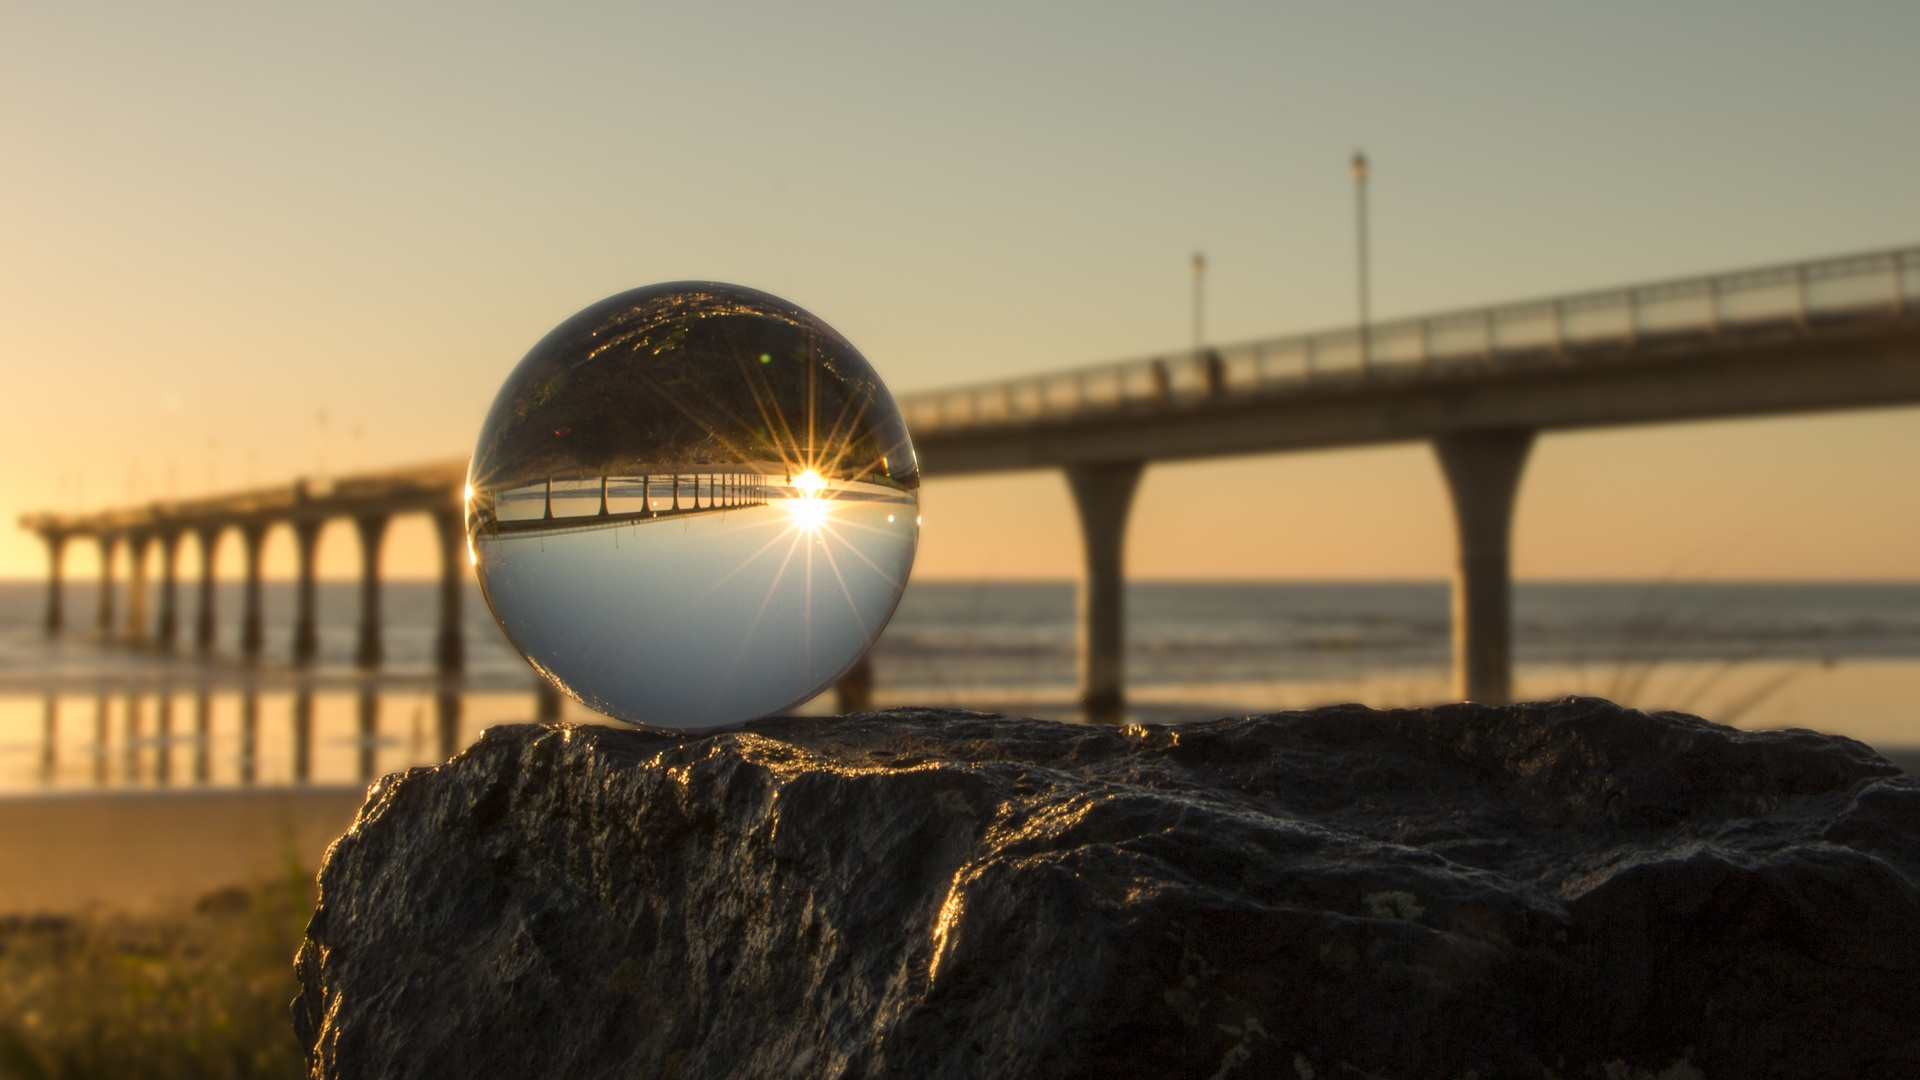 Crystal Ball Photography – my latest toy and project